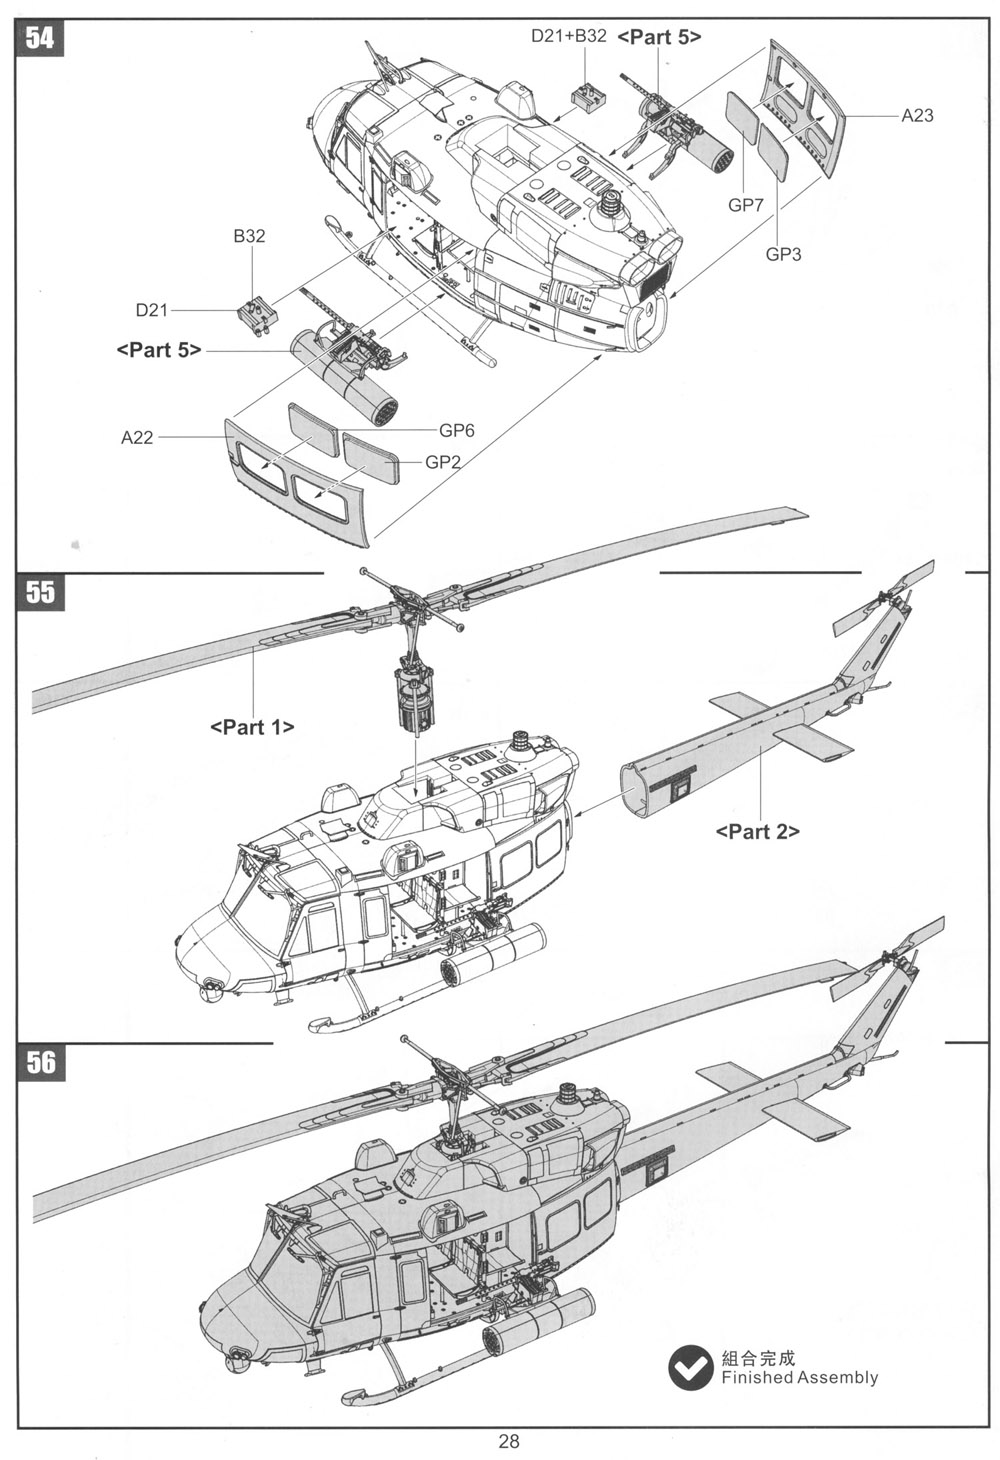 The Modelling News: In-Boxed: 1/48th scale UH-1N Twin Huey